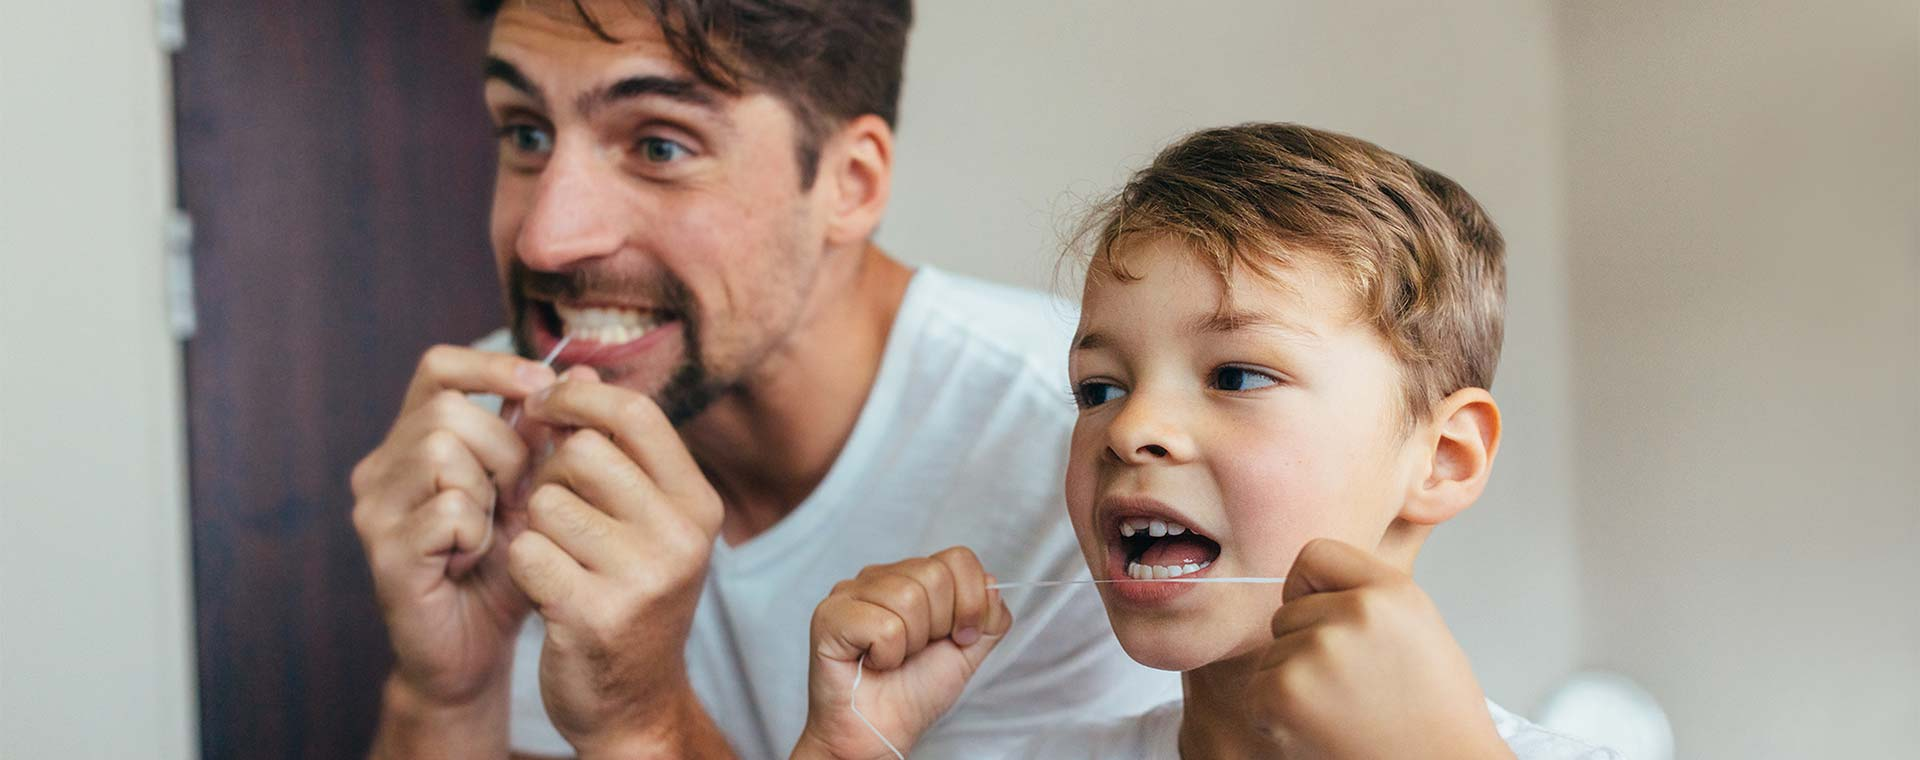 A father and son stand in front of a mirror and are flossing their teeth.